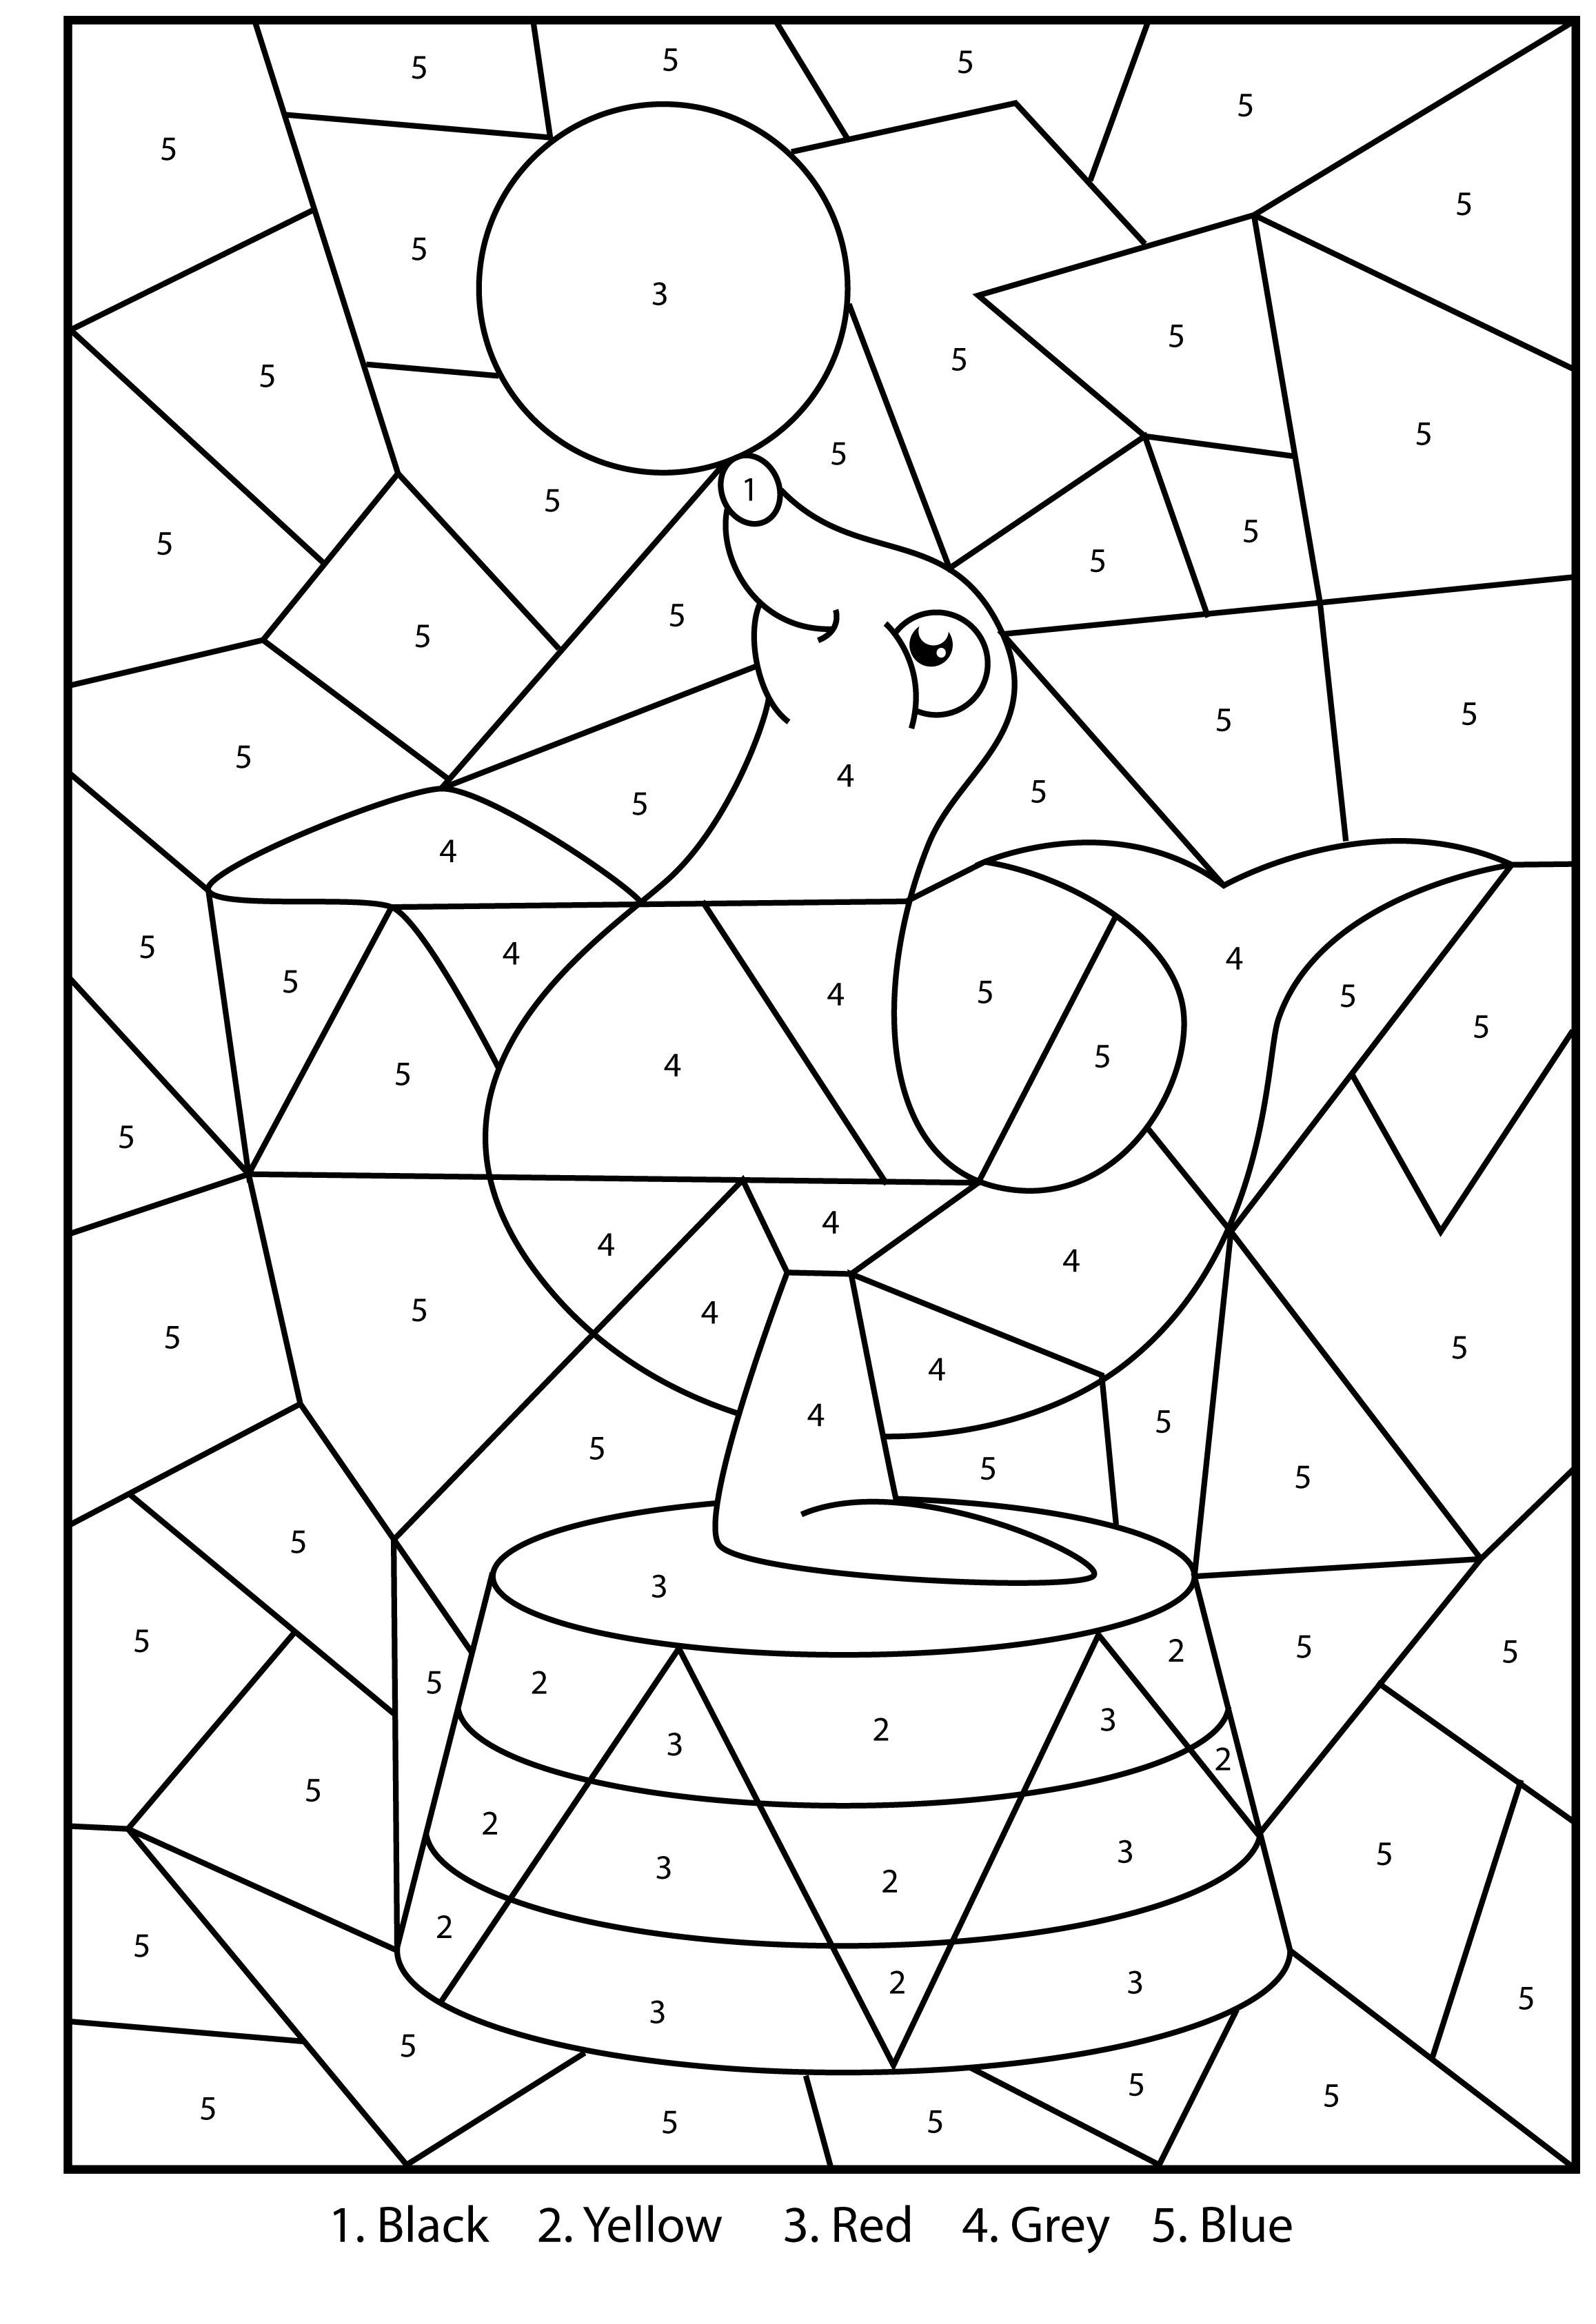 Free Printable Silly Seal Colour By Numbers Activity For Kids ...